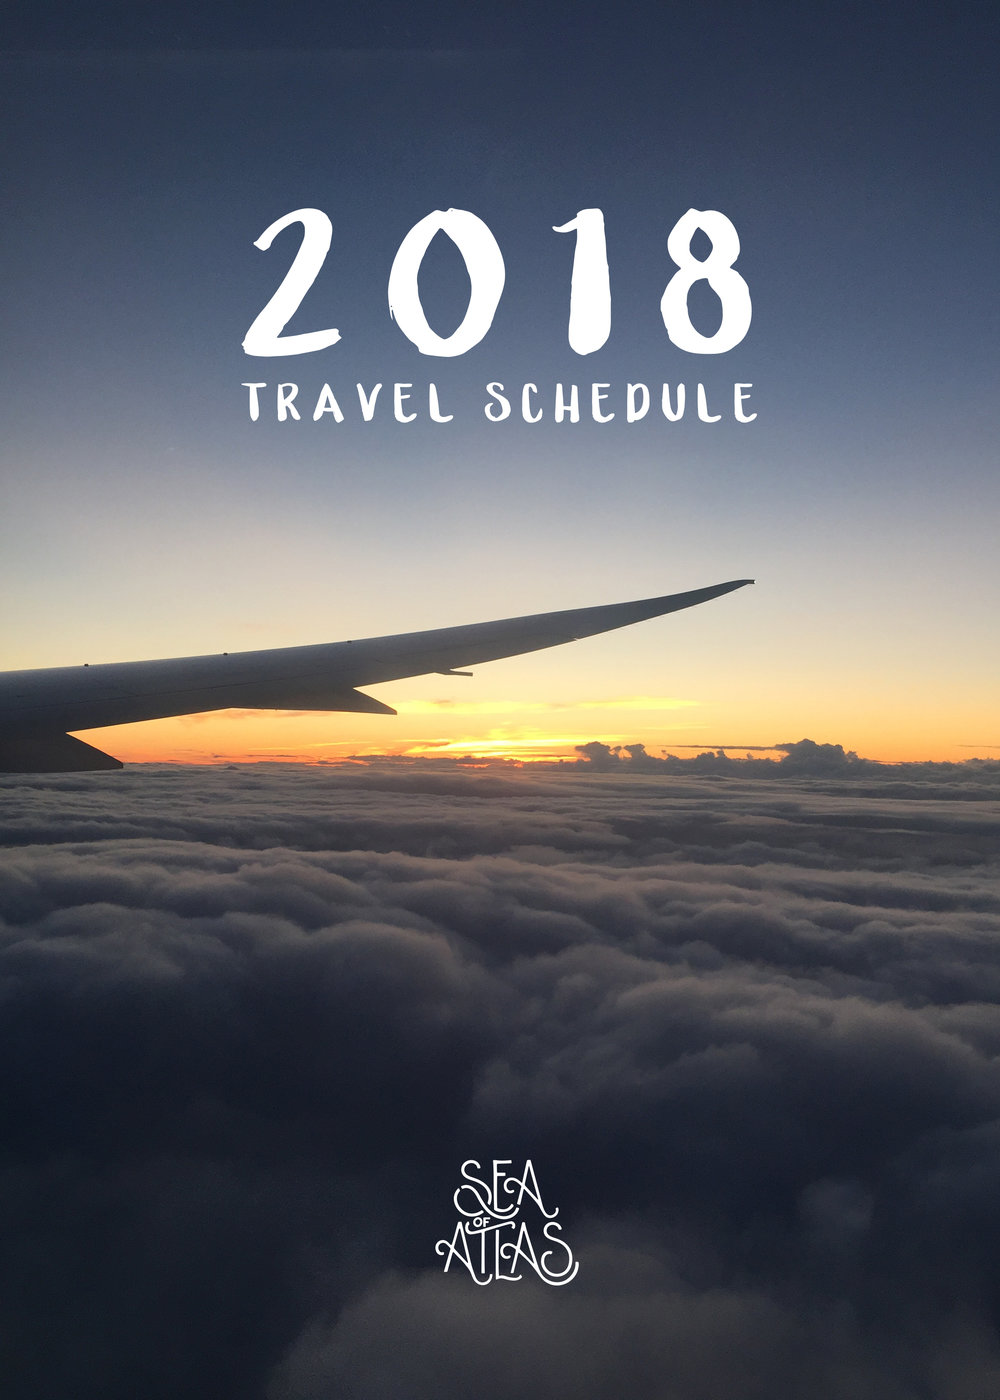 SOA_2018-Travel-Schedule.jpg